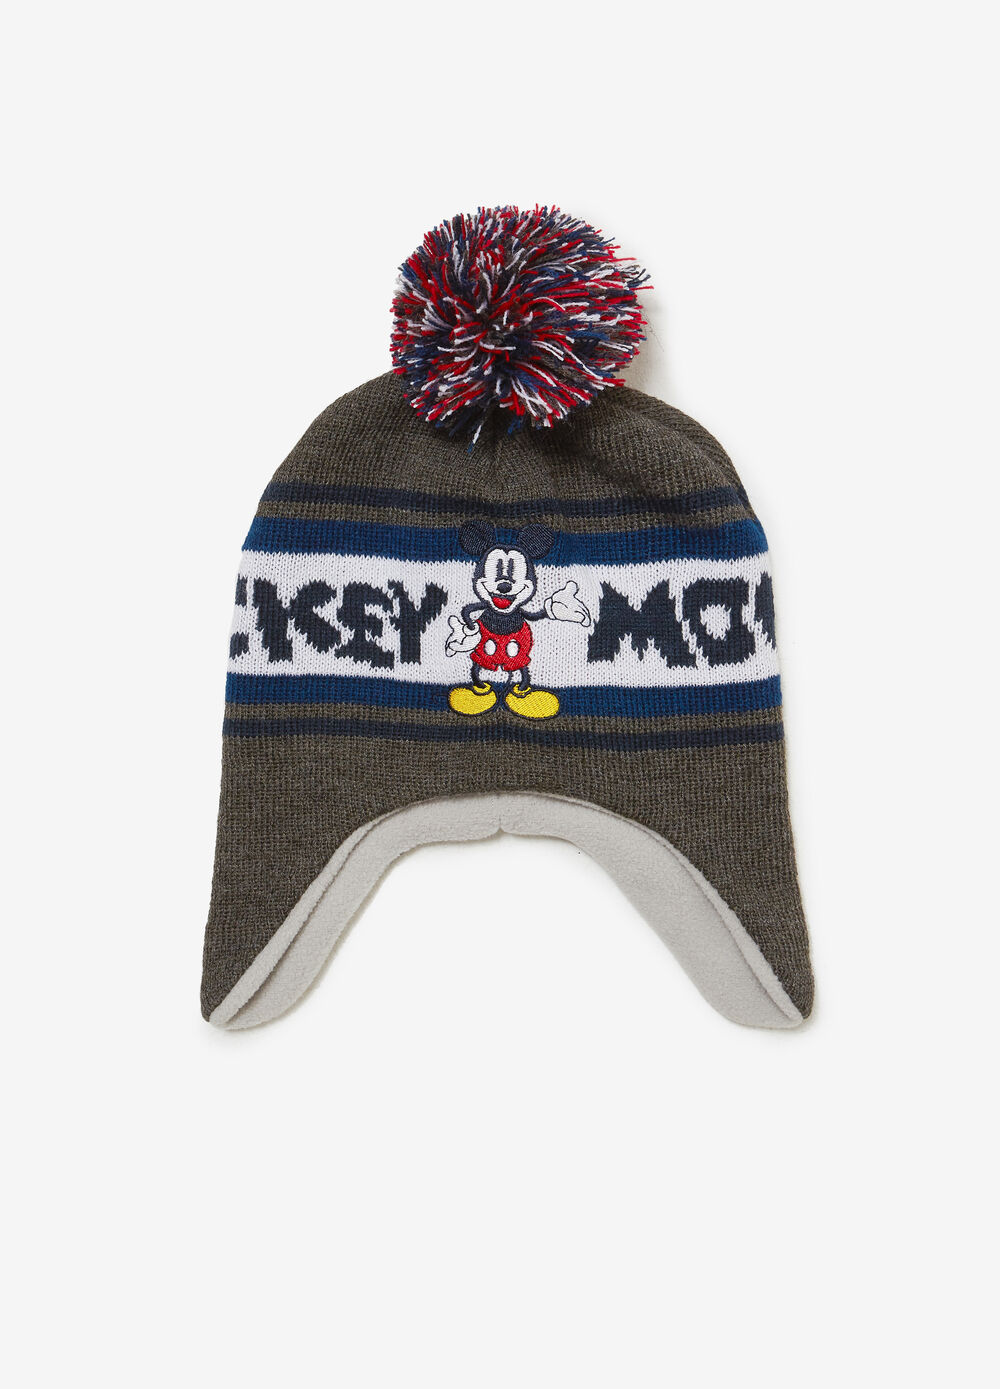 Mickey Mouse hat with ear flaps